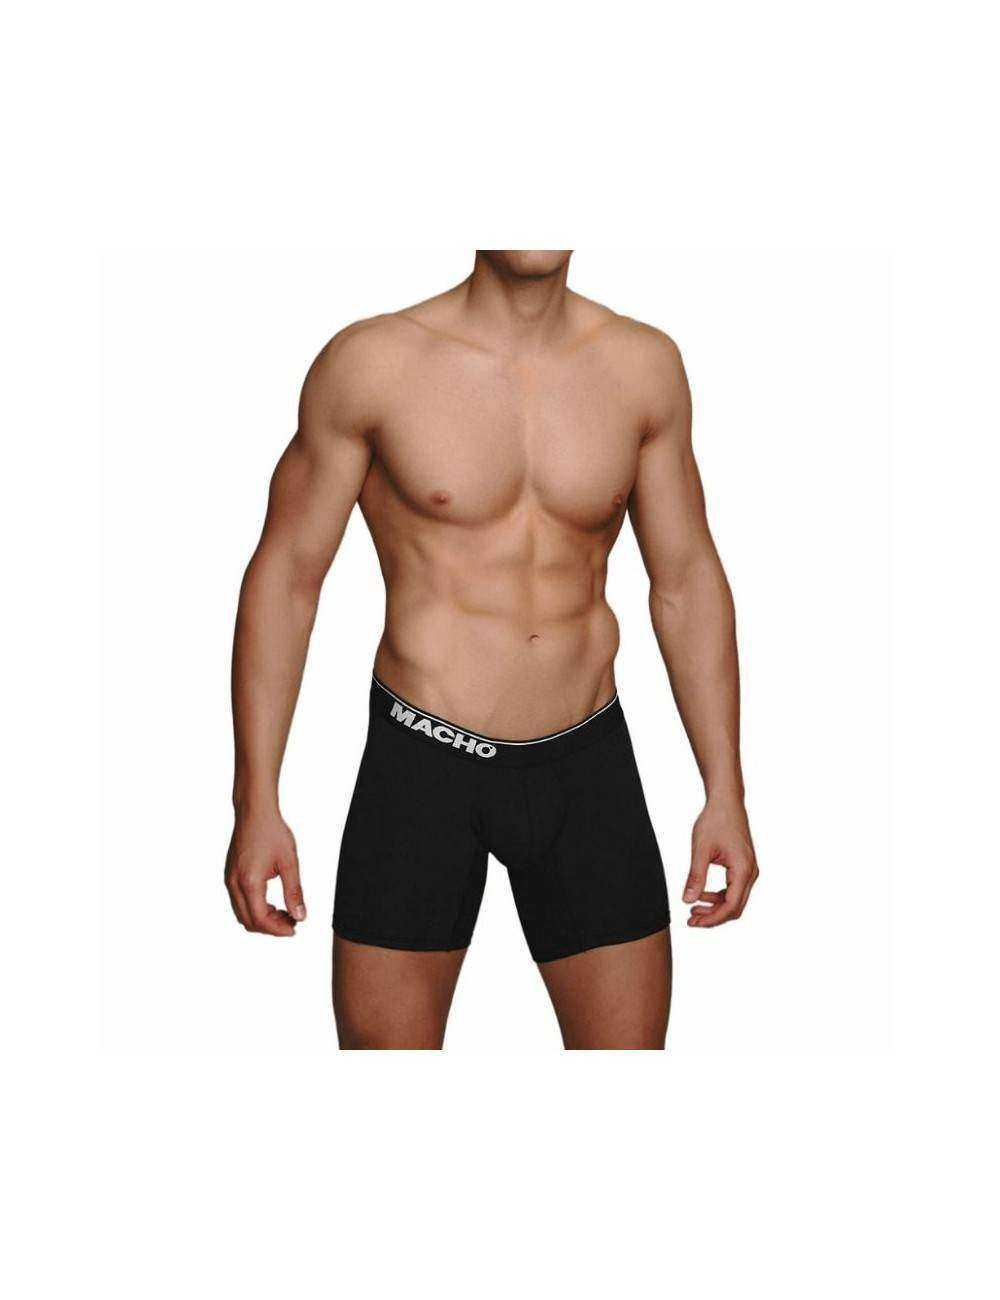 MACHO MC087 BOXER LARGO NEGRO TALLA S